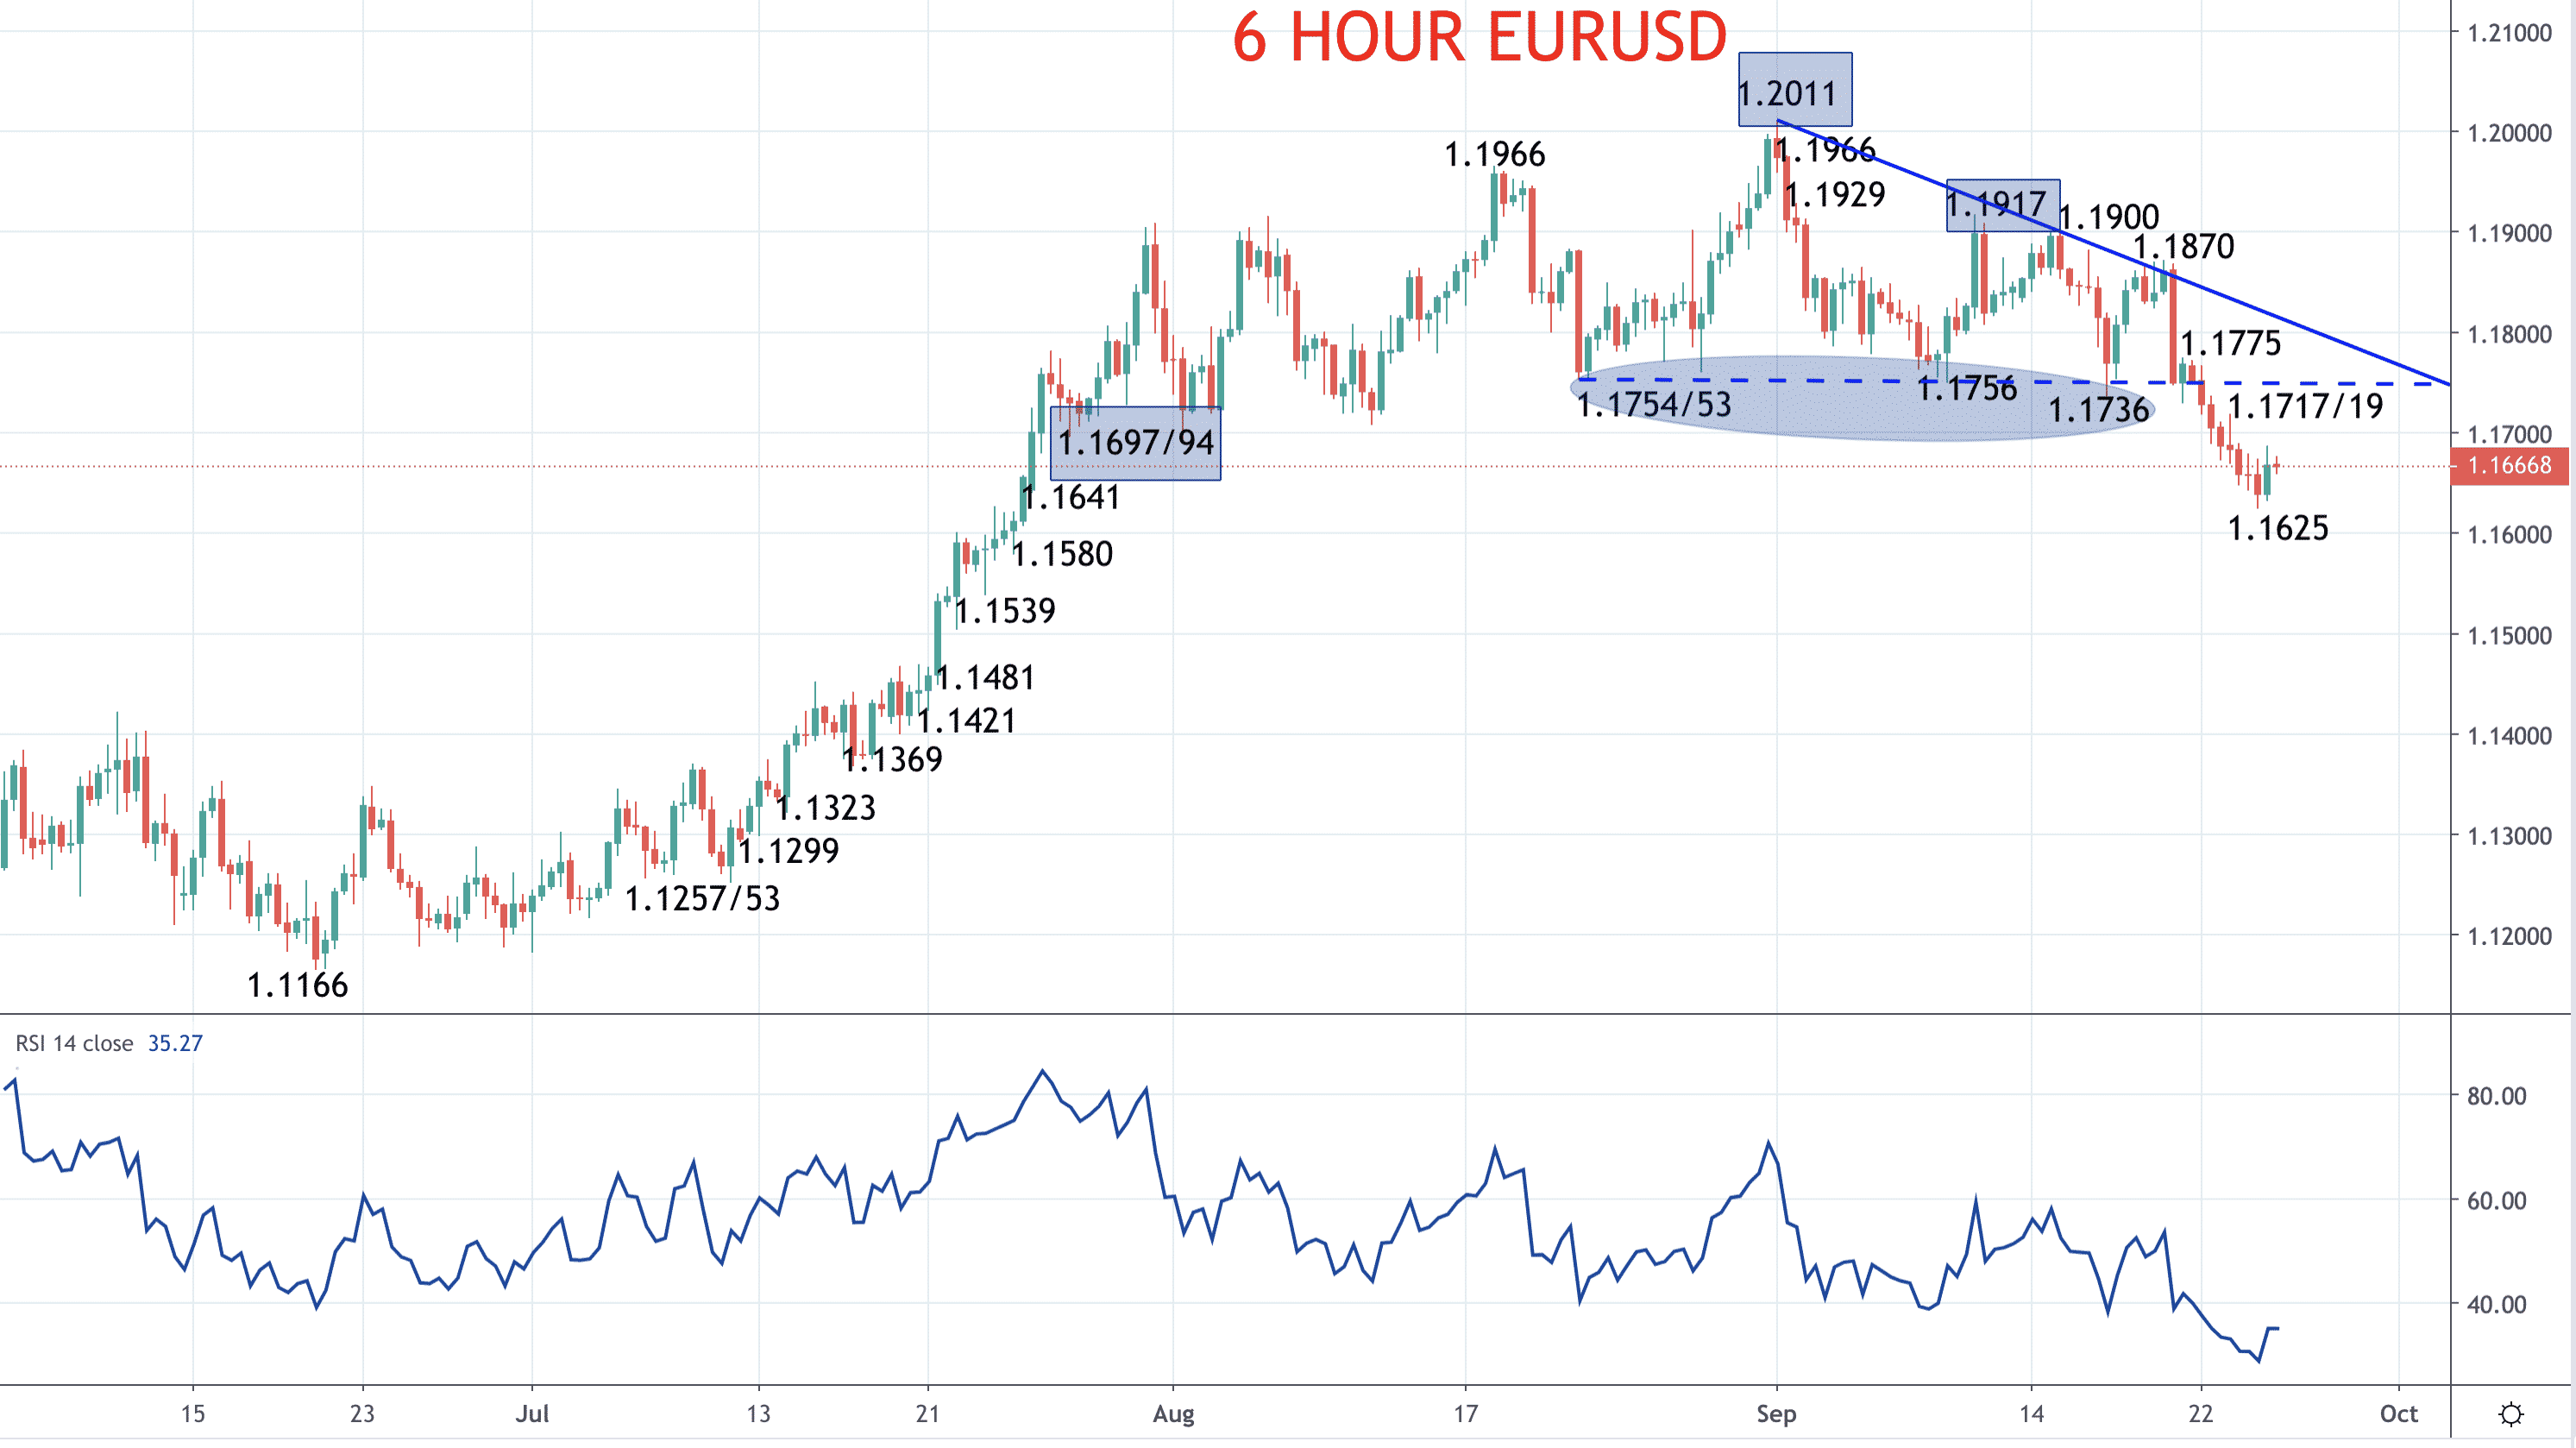 Euro stays vulnerable to a deeper setback – EURUSD forecast Image